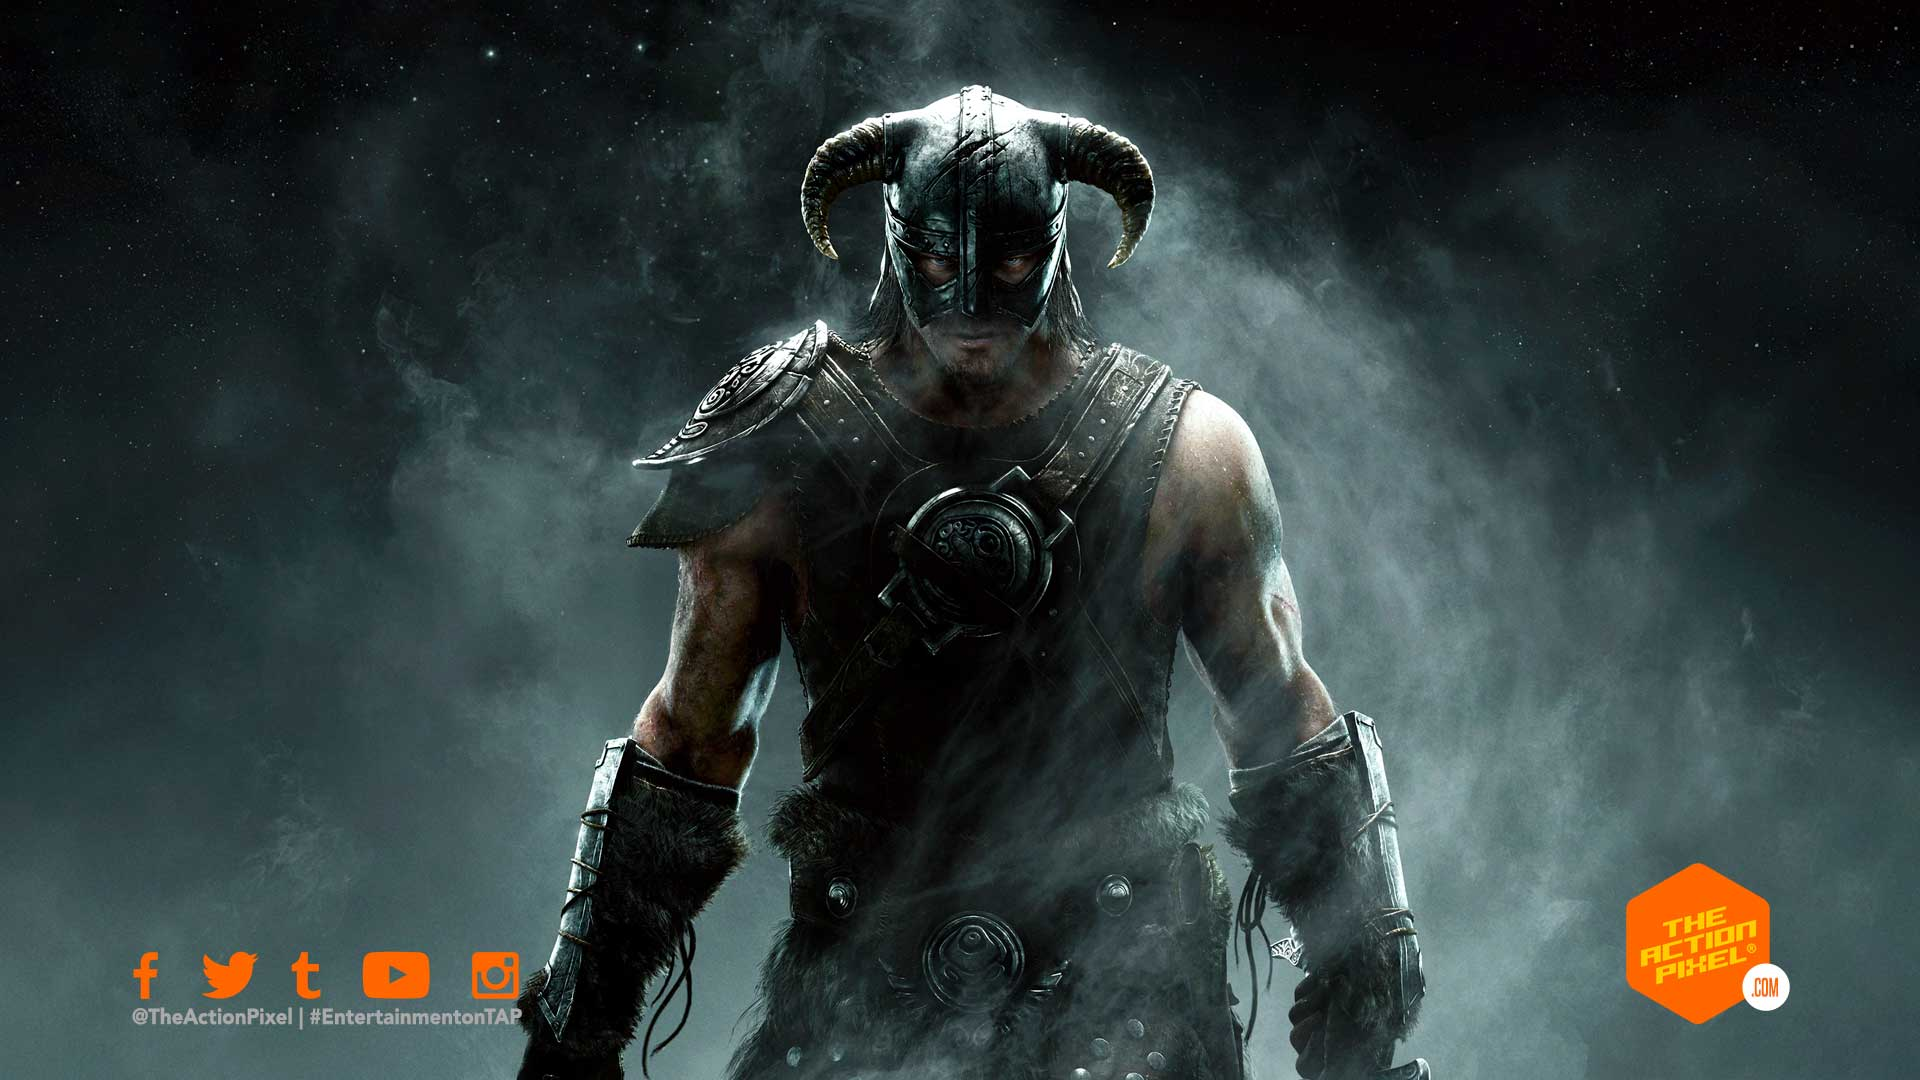 skyrim, the elder scrolls, featured, netflix, rumour, entertainment on tap, the action pixel, featured, netflix video game tv series, tv game series,